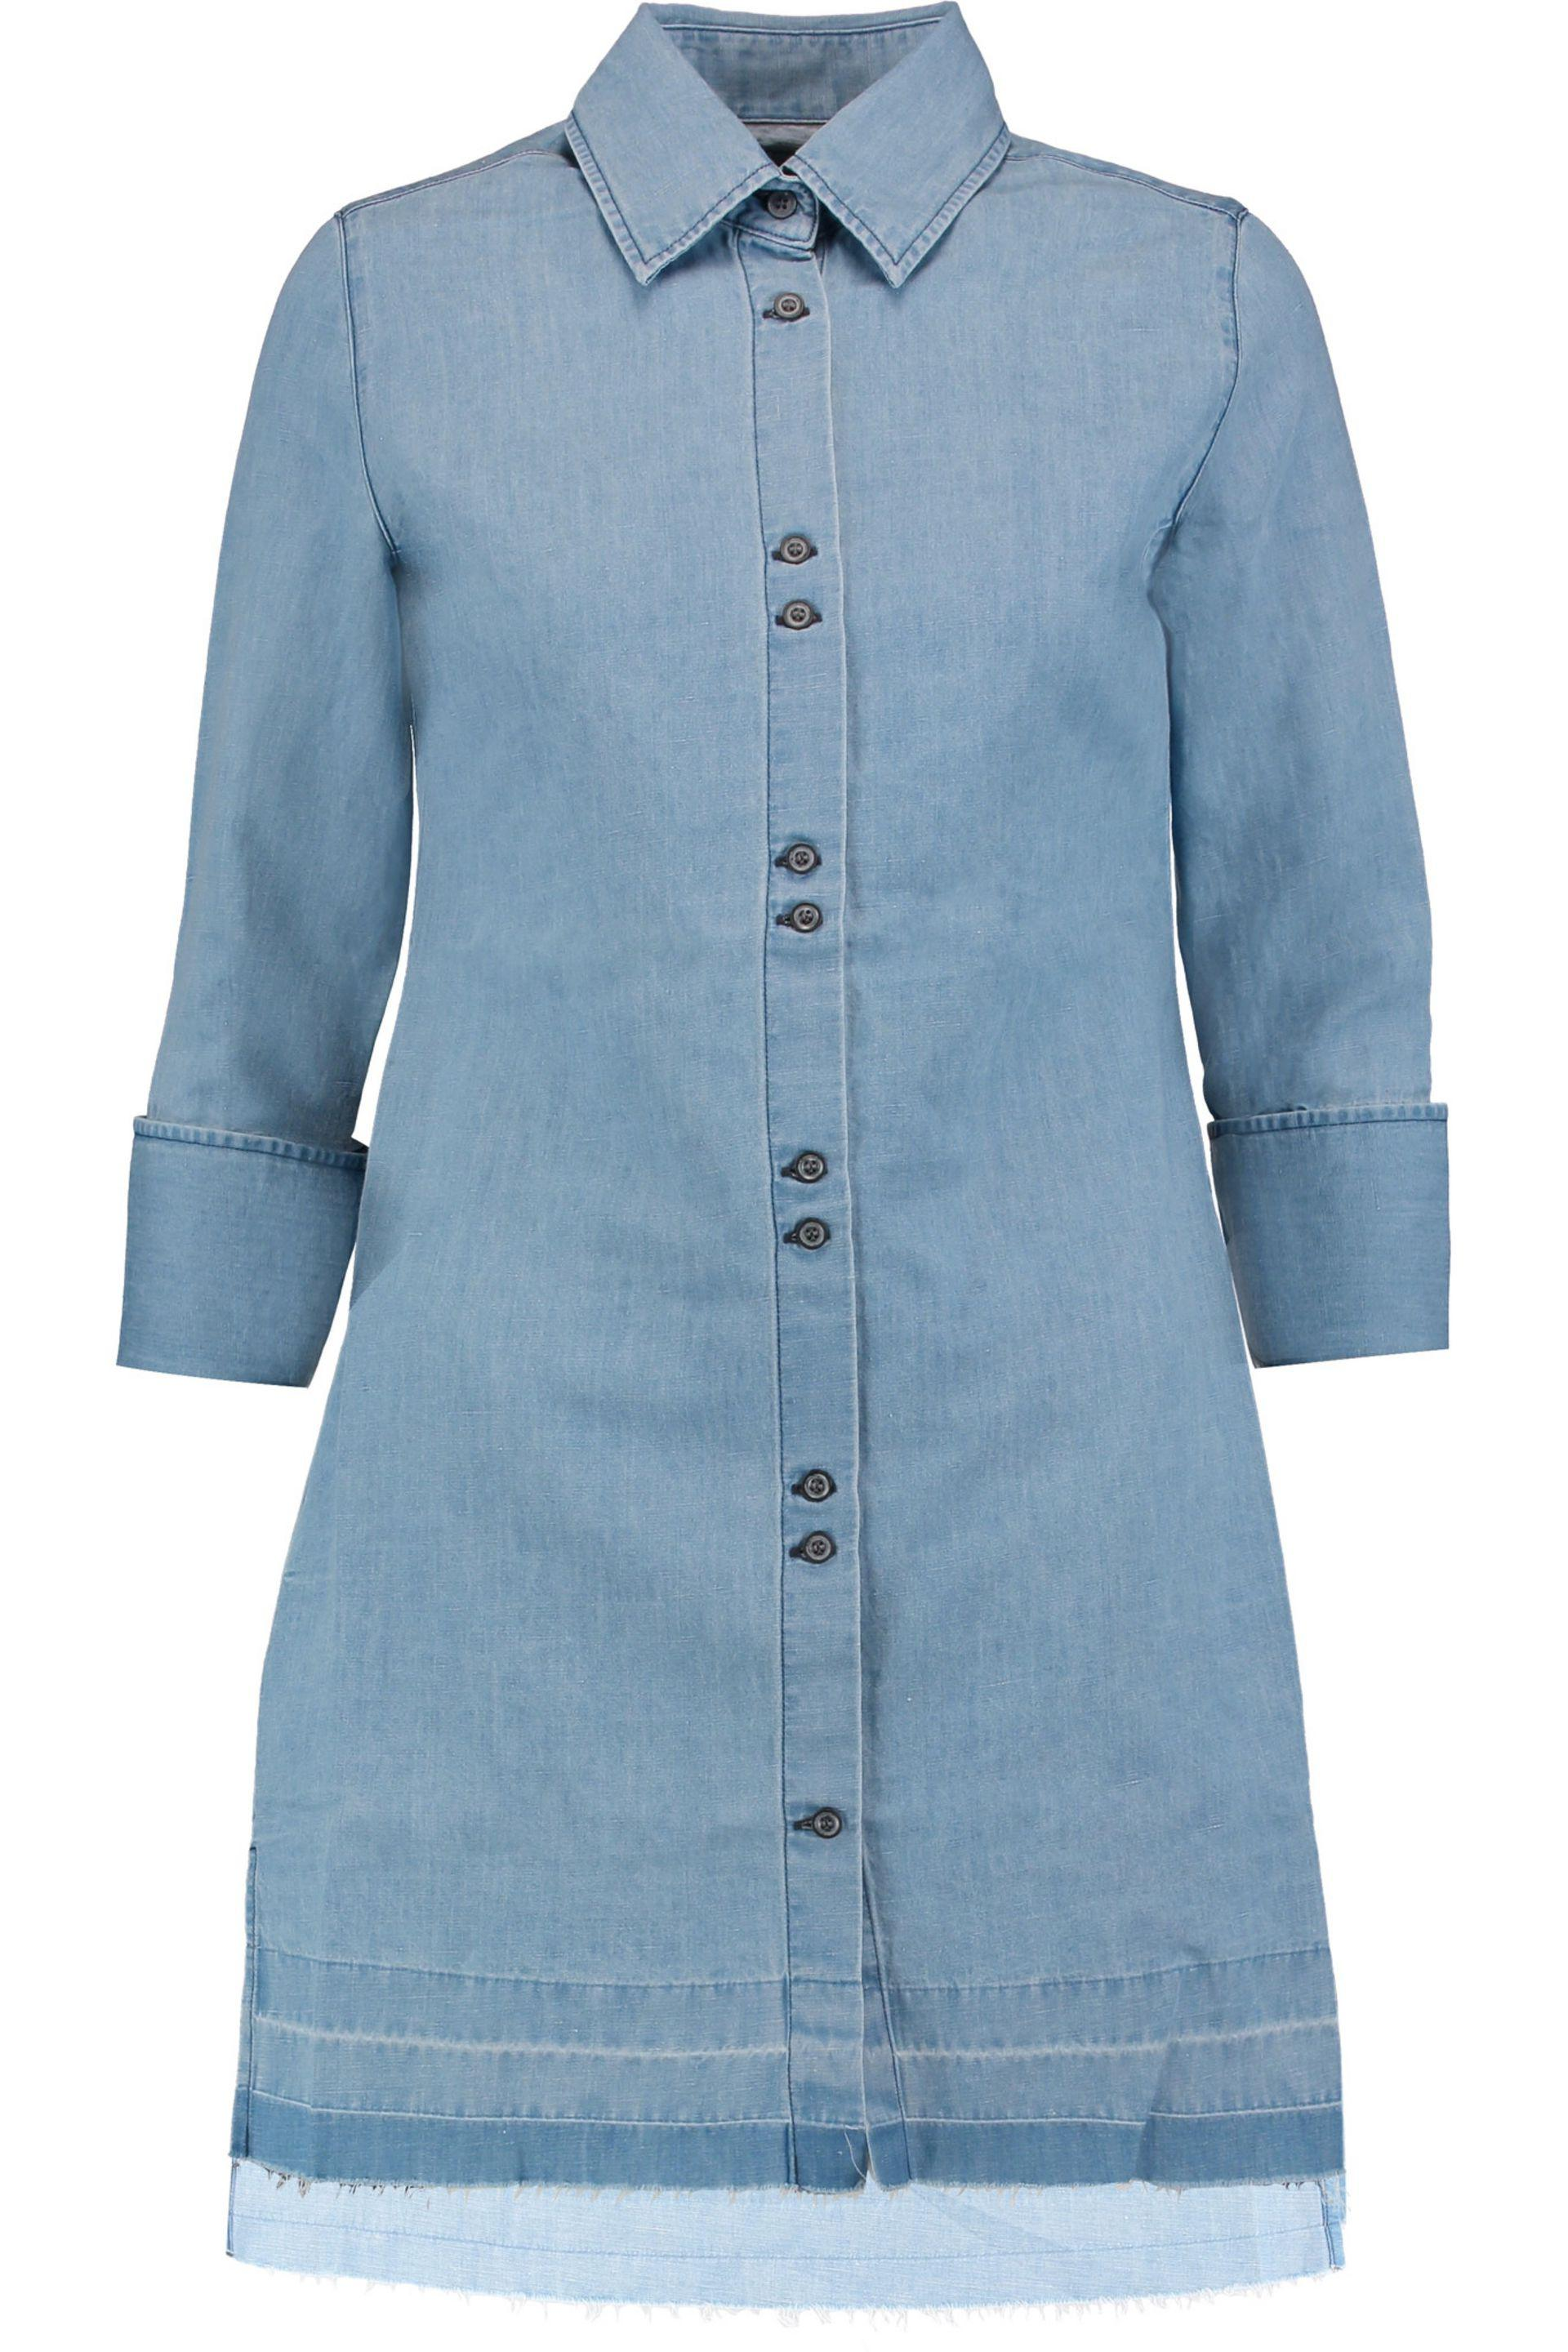 df78953a9f Lyst - J Brand Bacall Denim Mini Shirt Dress Light Denim in Blue